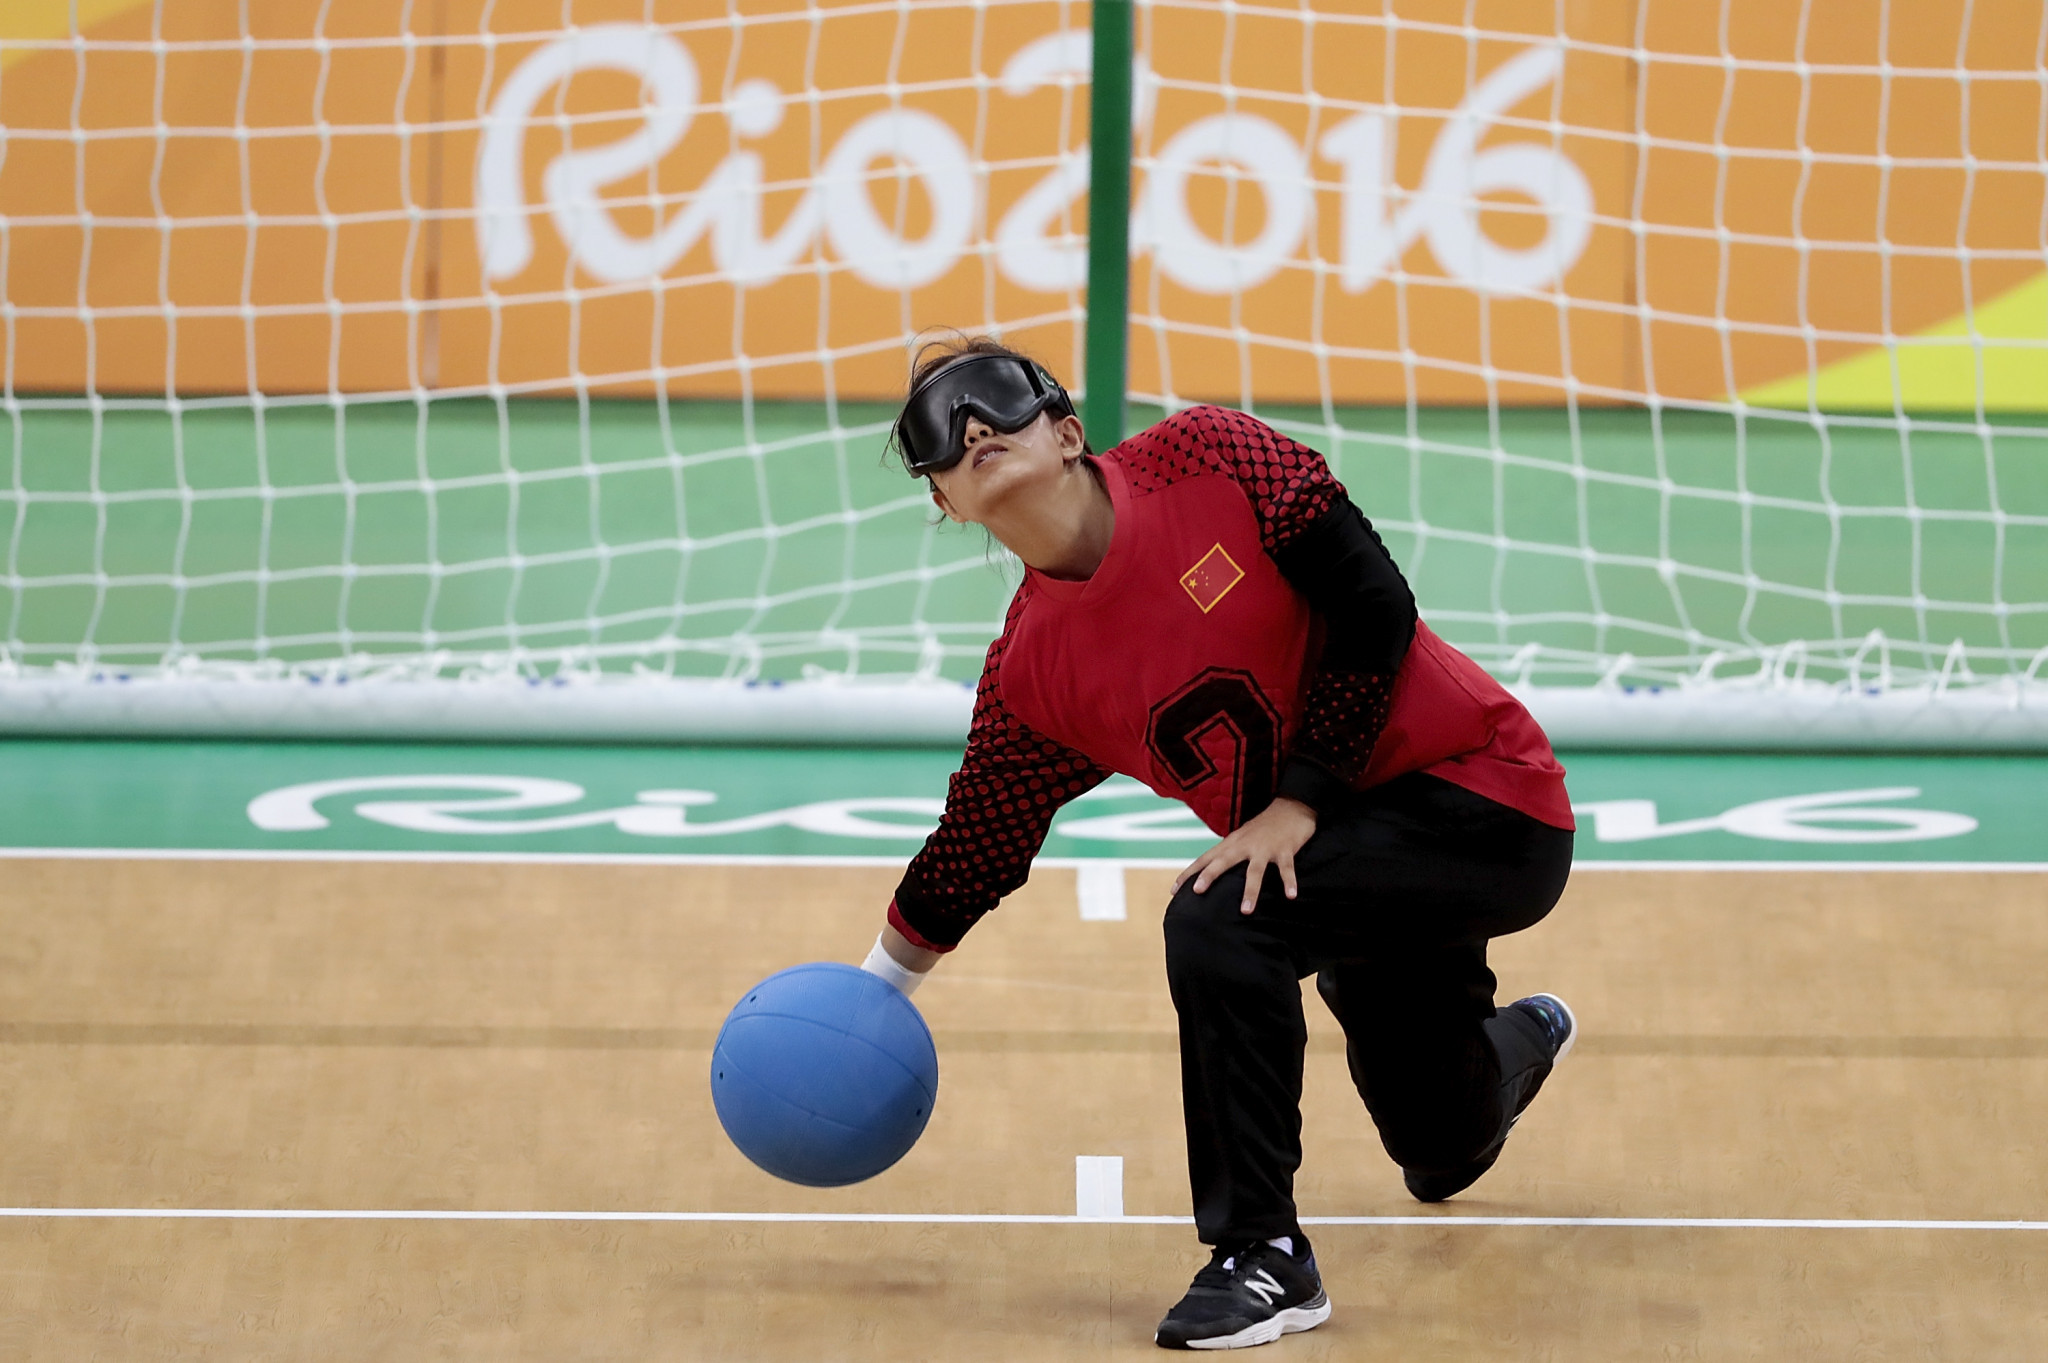 China's women won Paralympic silver at Rio 2016 ©Getty Images